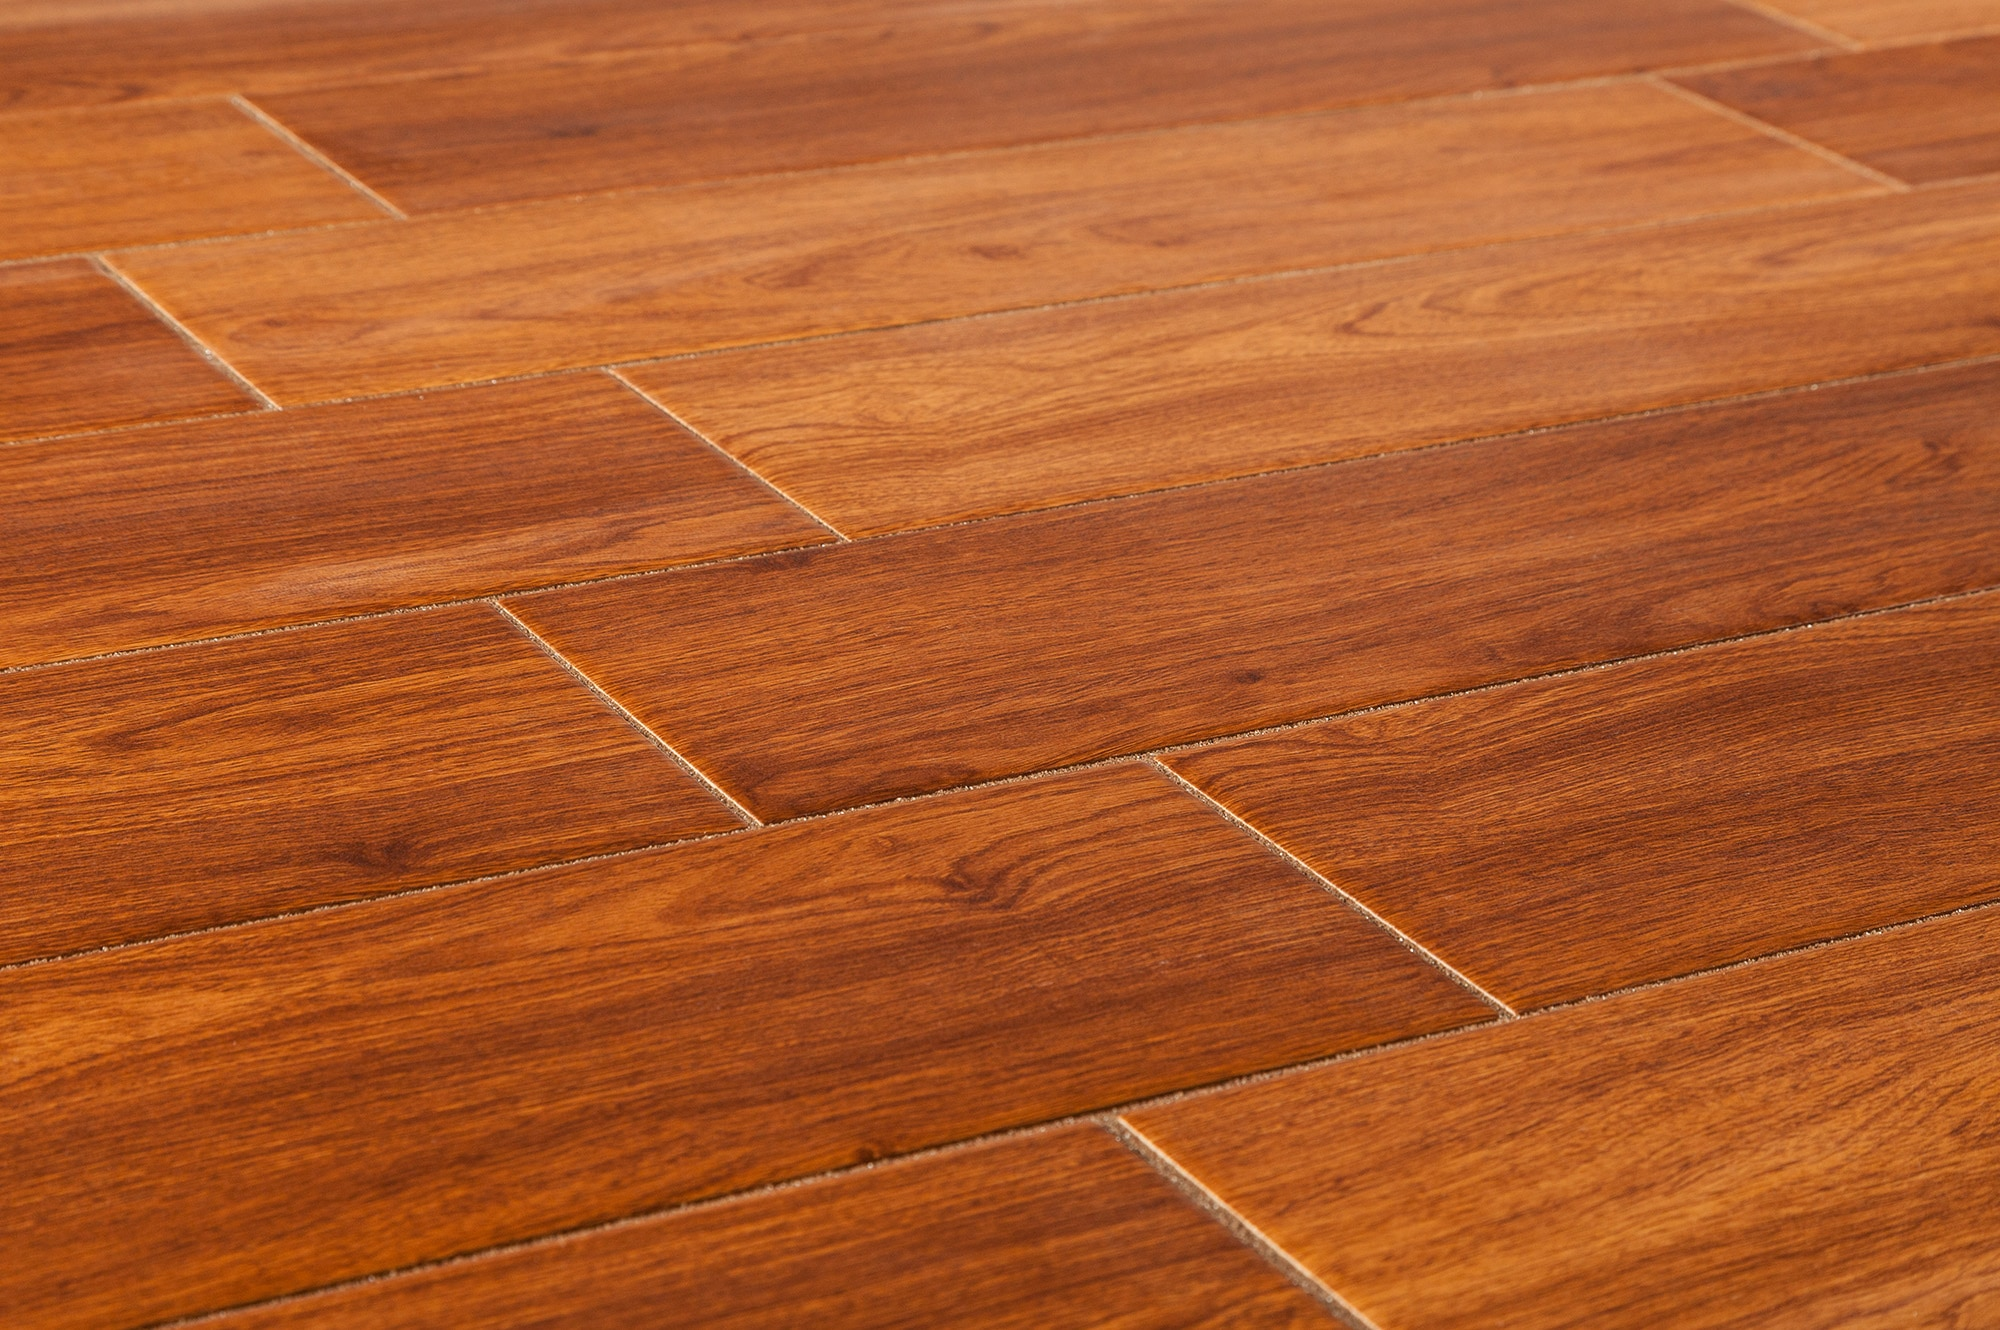 Salerno ceramic tile american wood series red oak 6x24 dailygadgetfo Image collections